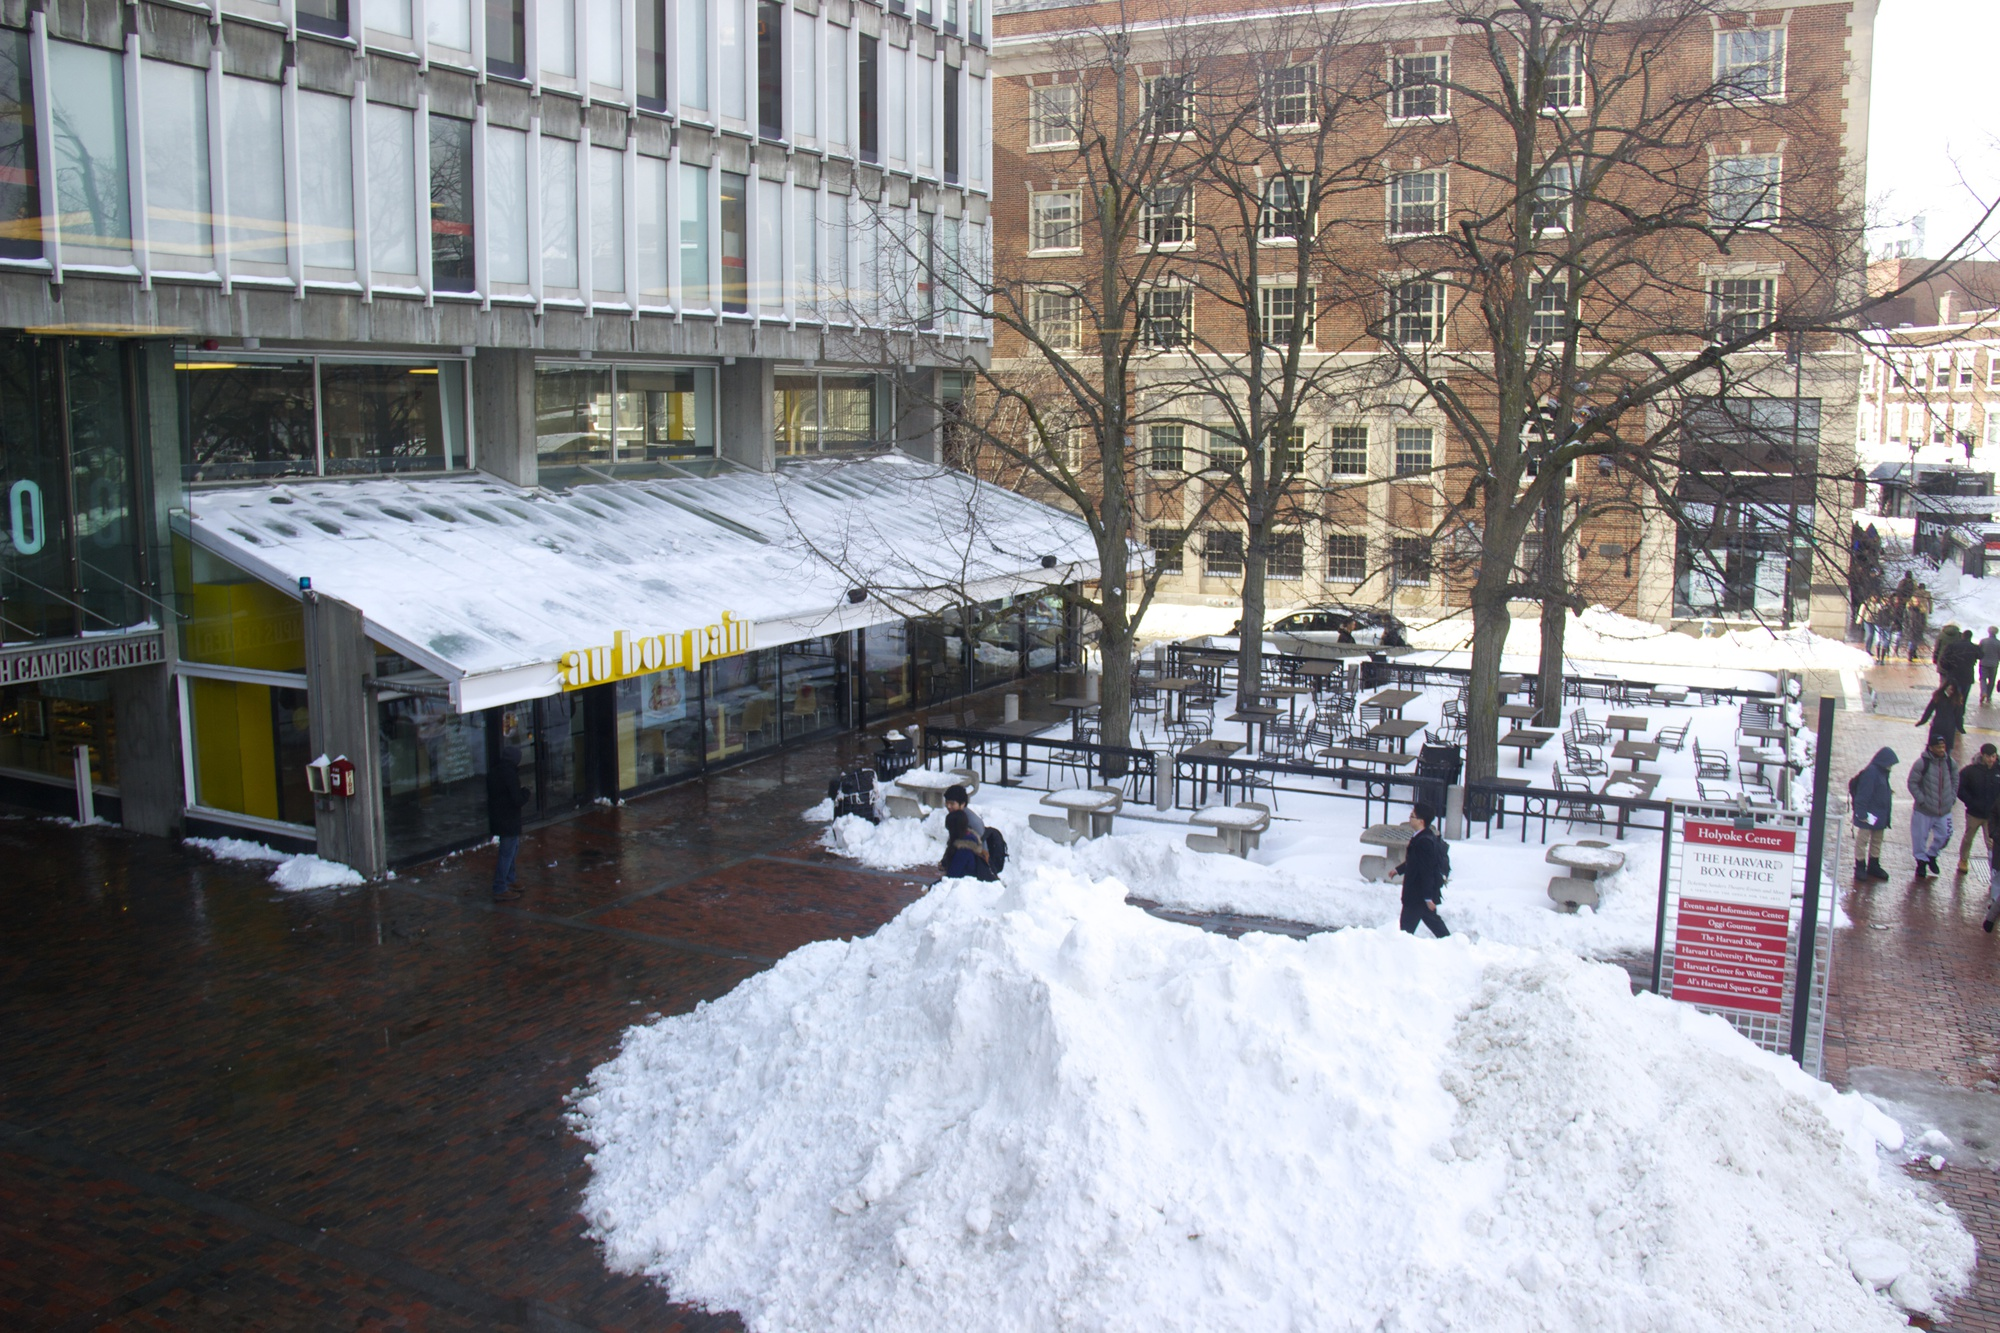 The plaza outside the Smith Campus Center will change significantly in the upcoming renovations, hosting a new extended glass  front where Au Bon Pain is currently located. Brigid O'Rourke, a Harvard spokesperson, said the fate of restaurants in the campus center has yet to be decided.